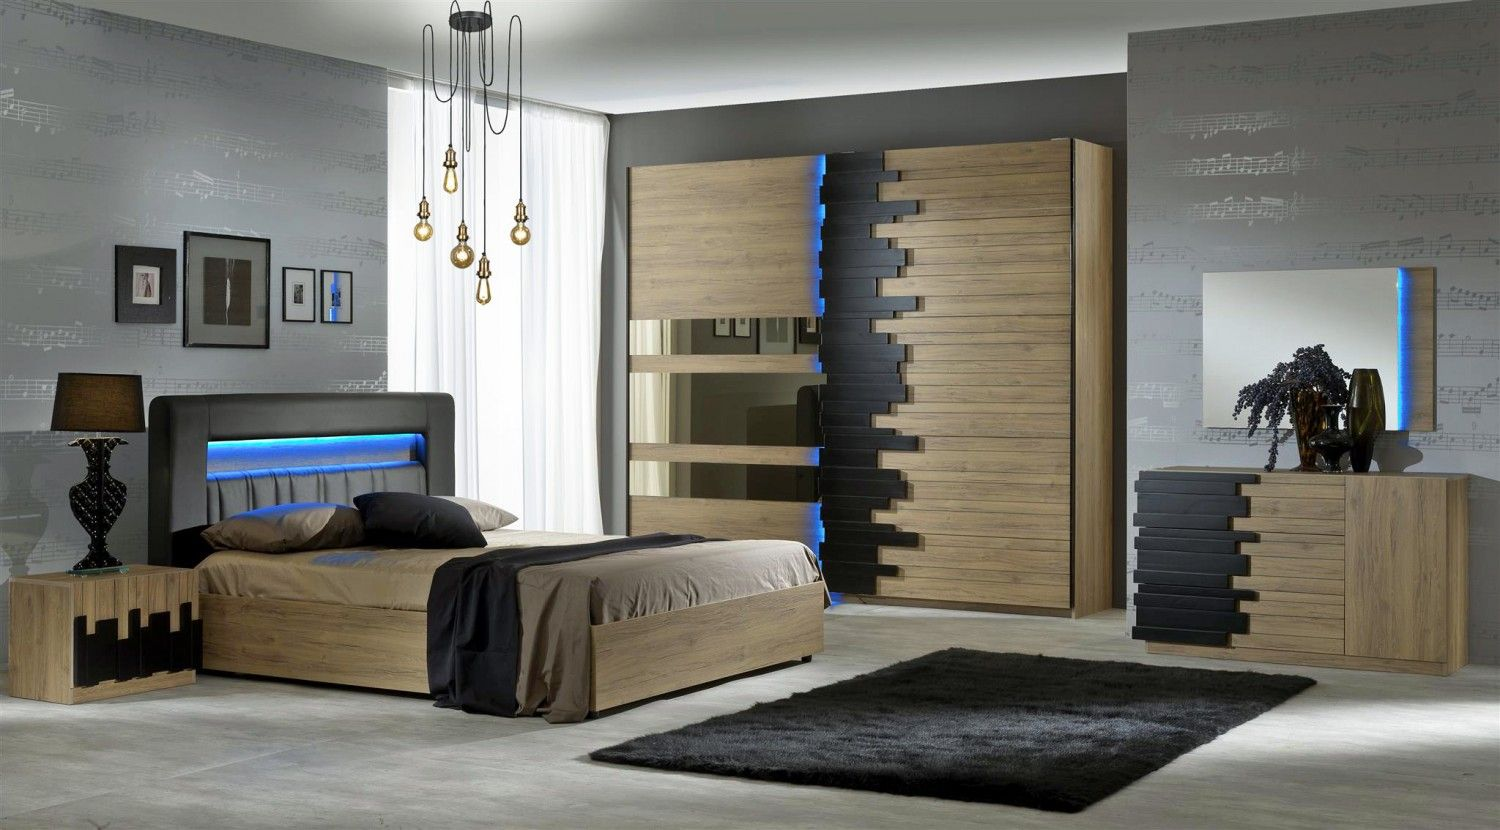 Schlafzimmer Billig Billig Schlafzimmer Set Deutsche In 2019 Room Home Decor